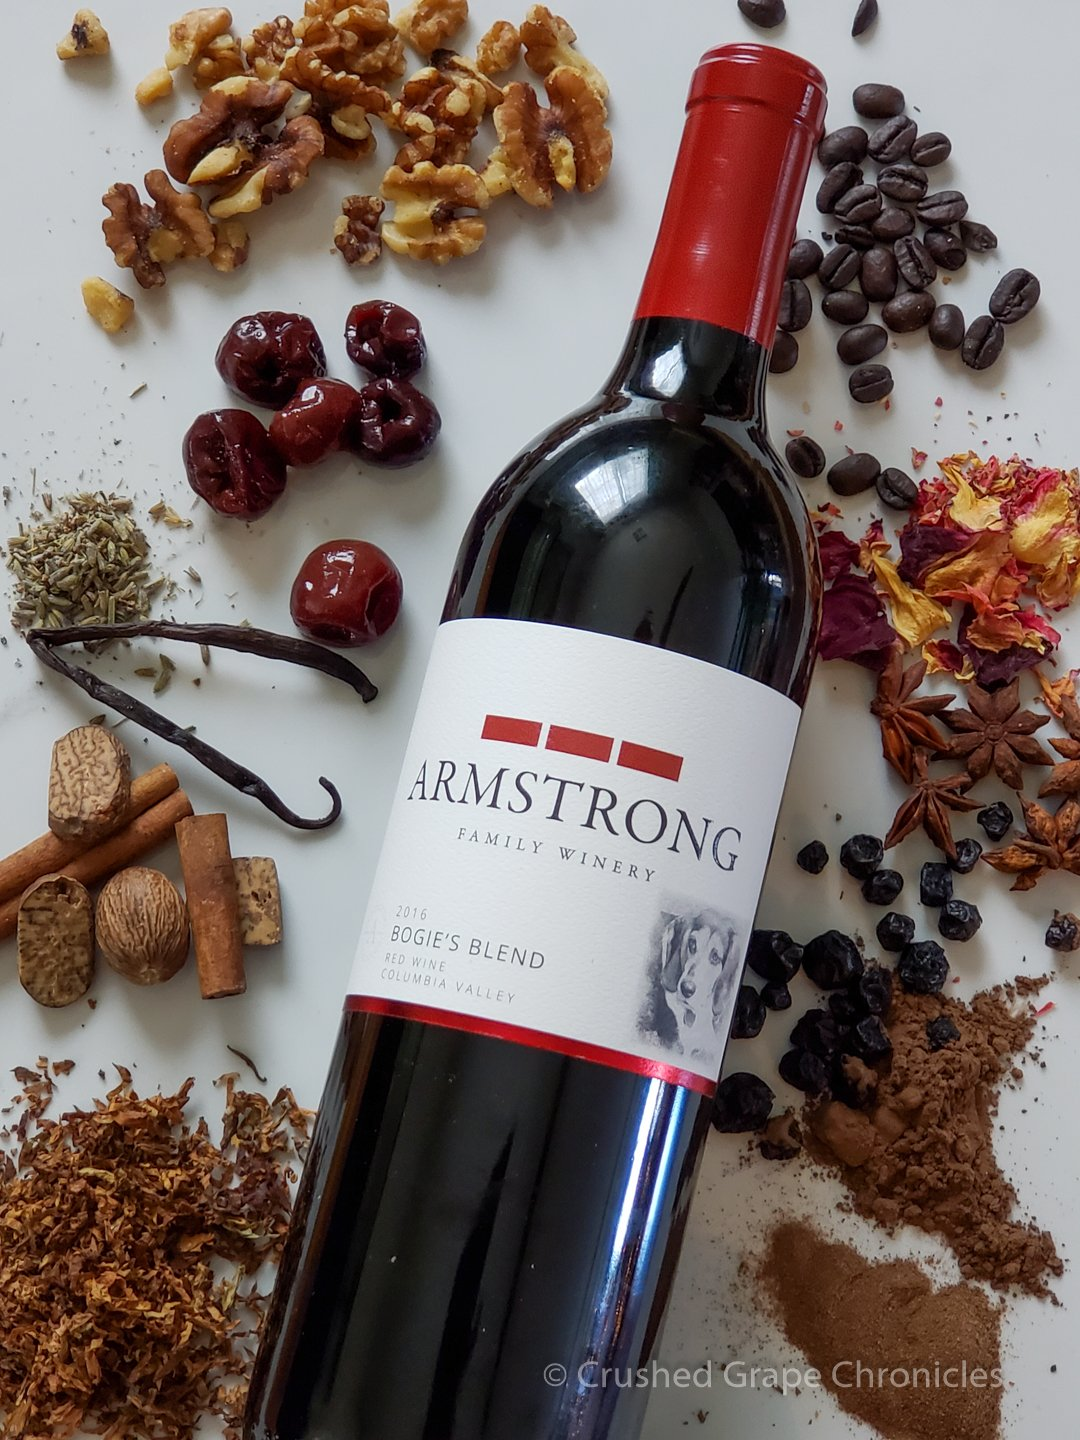 Armstrong Family Winery 2016 Bogie's Blend with it's flavor profile